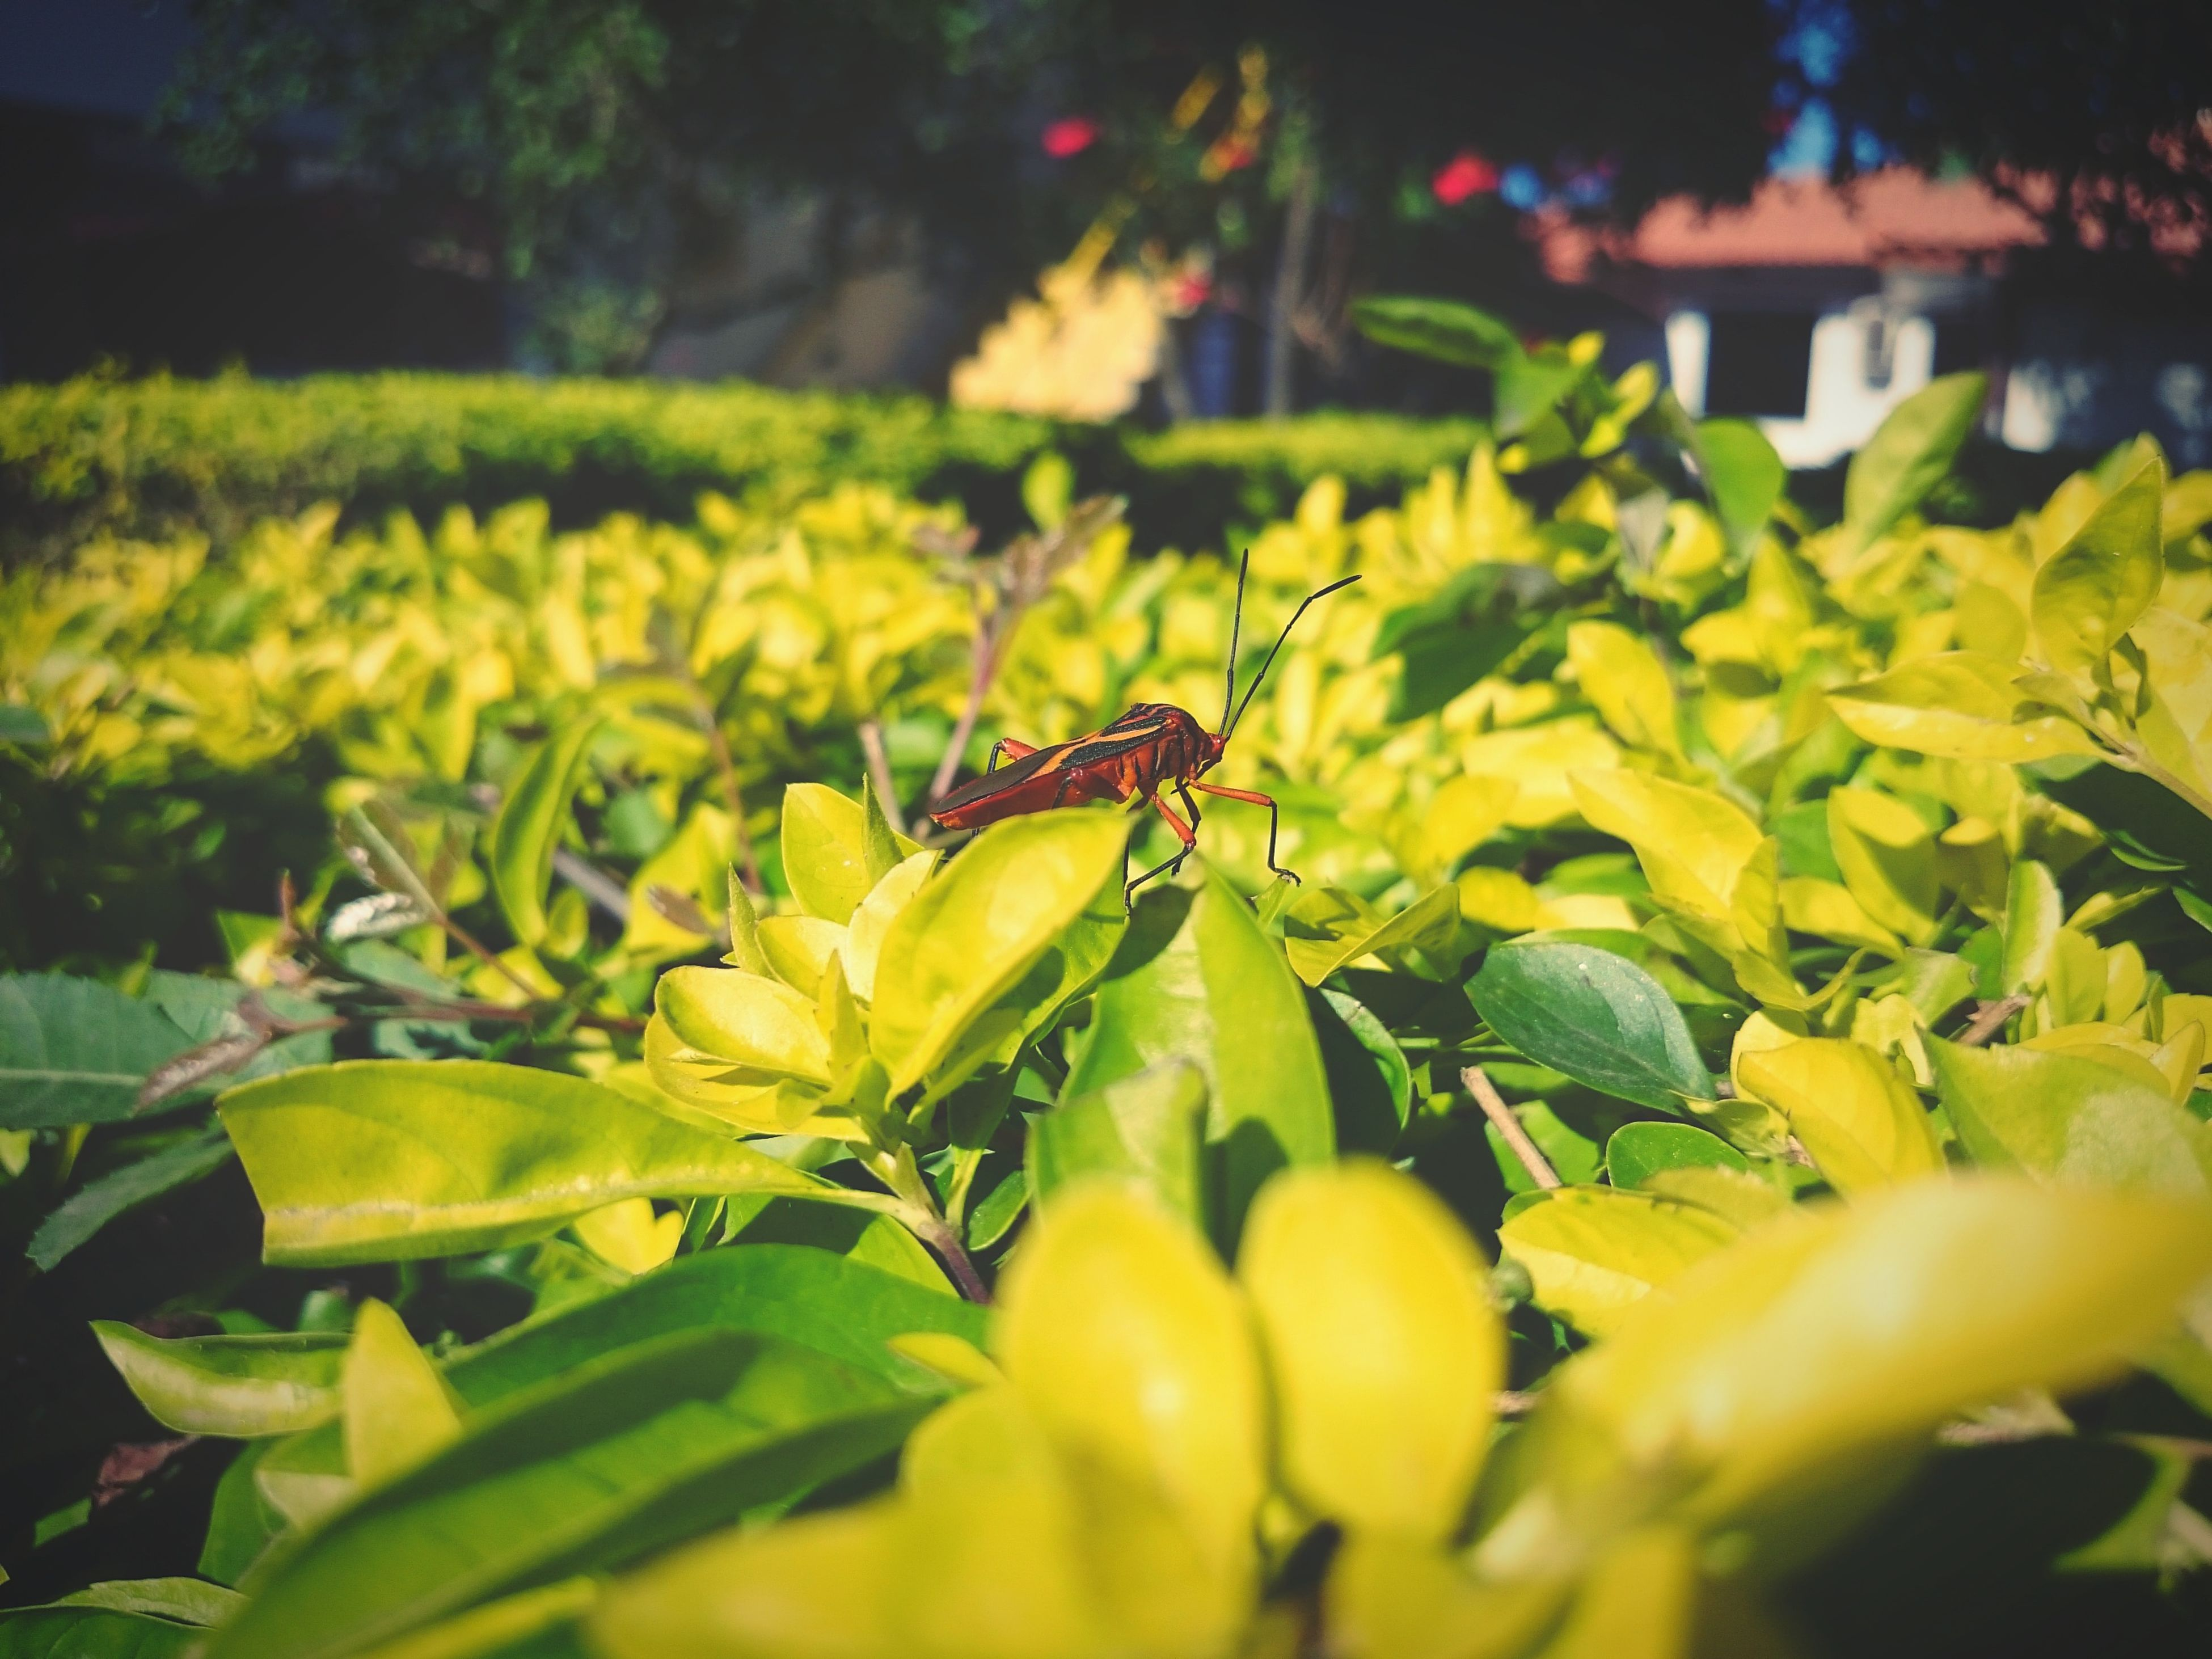 nature, insect, plant, focus on foreground, one animal, green color, close-up, animals in the wild, growth, beauty in nature, animal themes, flower, sunlight, day, no people, leaf, outdoors, animal wildlife, flower head, freshness, fragility